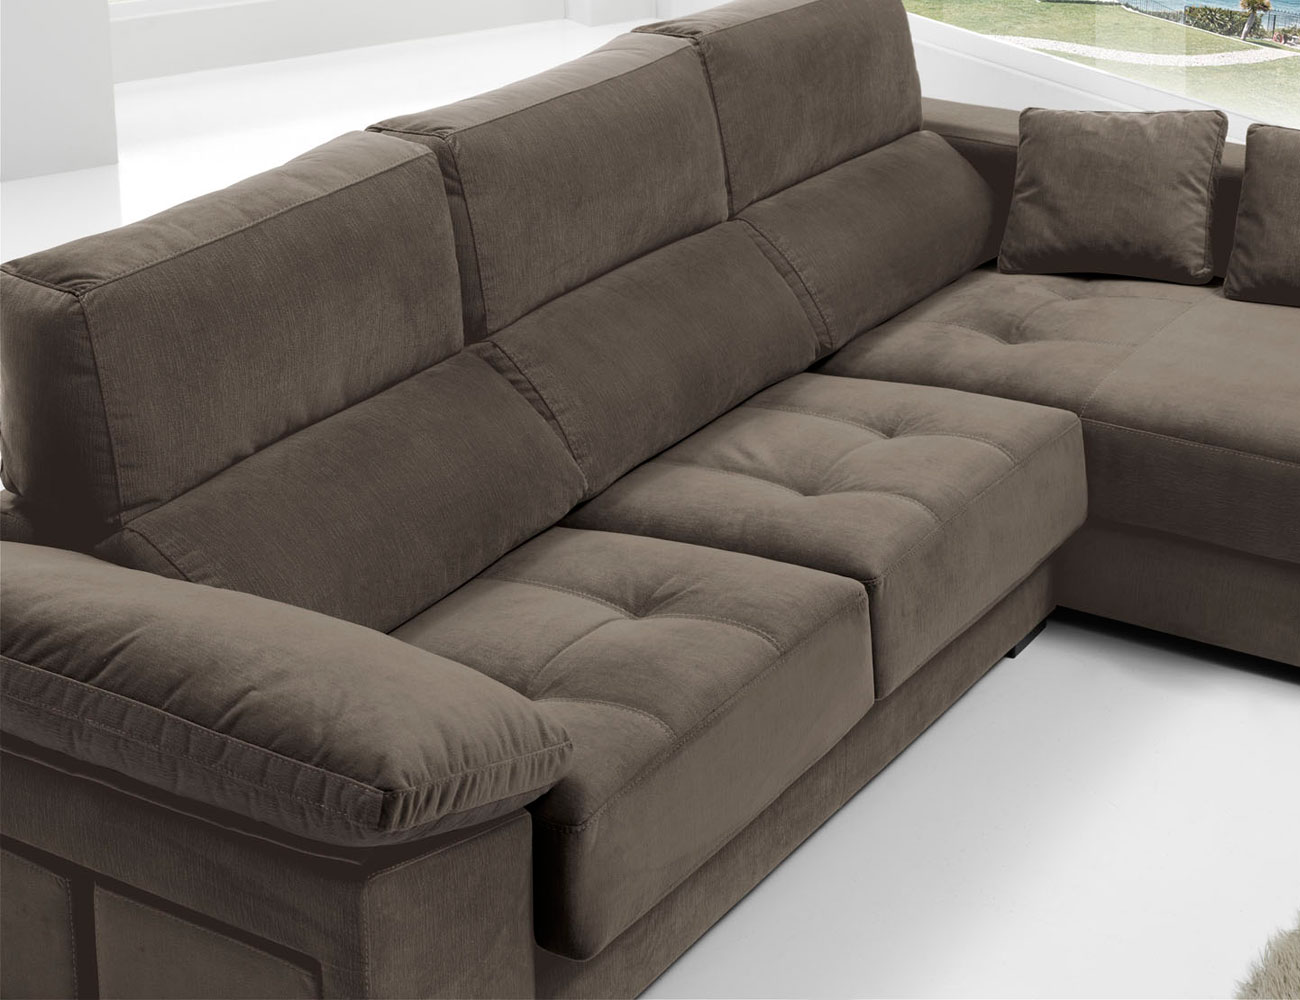 Sofa chaiselongue anti manchas bering pouf 268